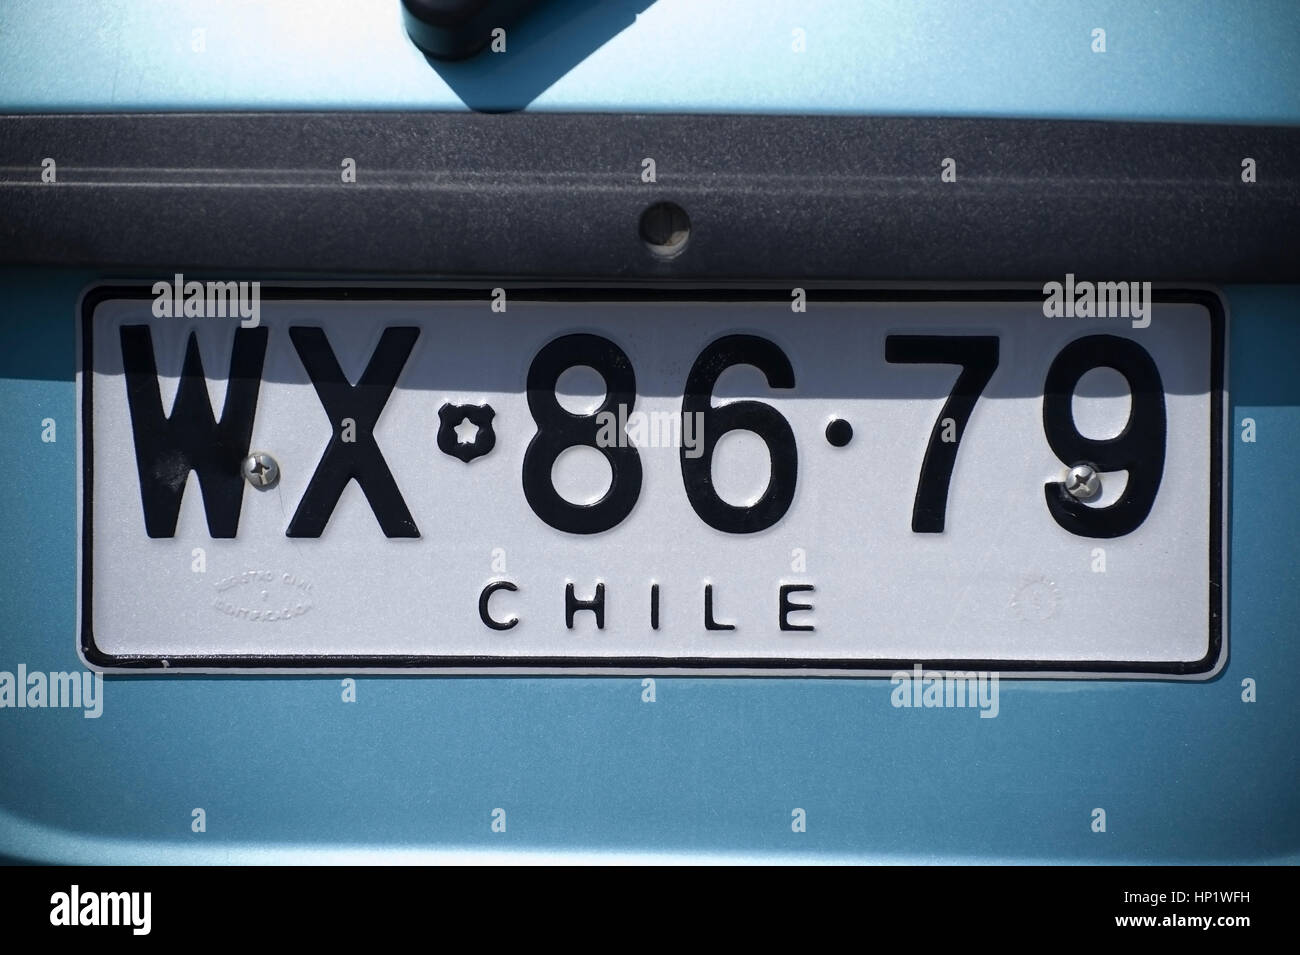 Autokennzeichen, Chile - numberplate, Chile - Stock Image